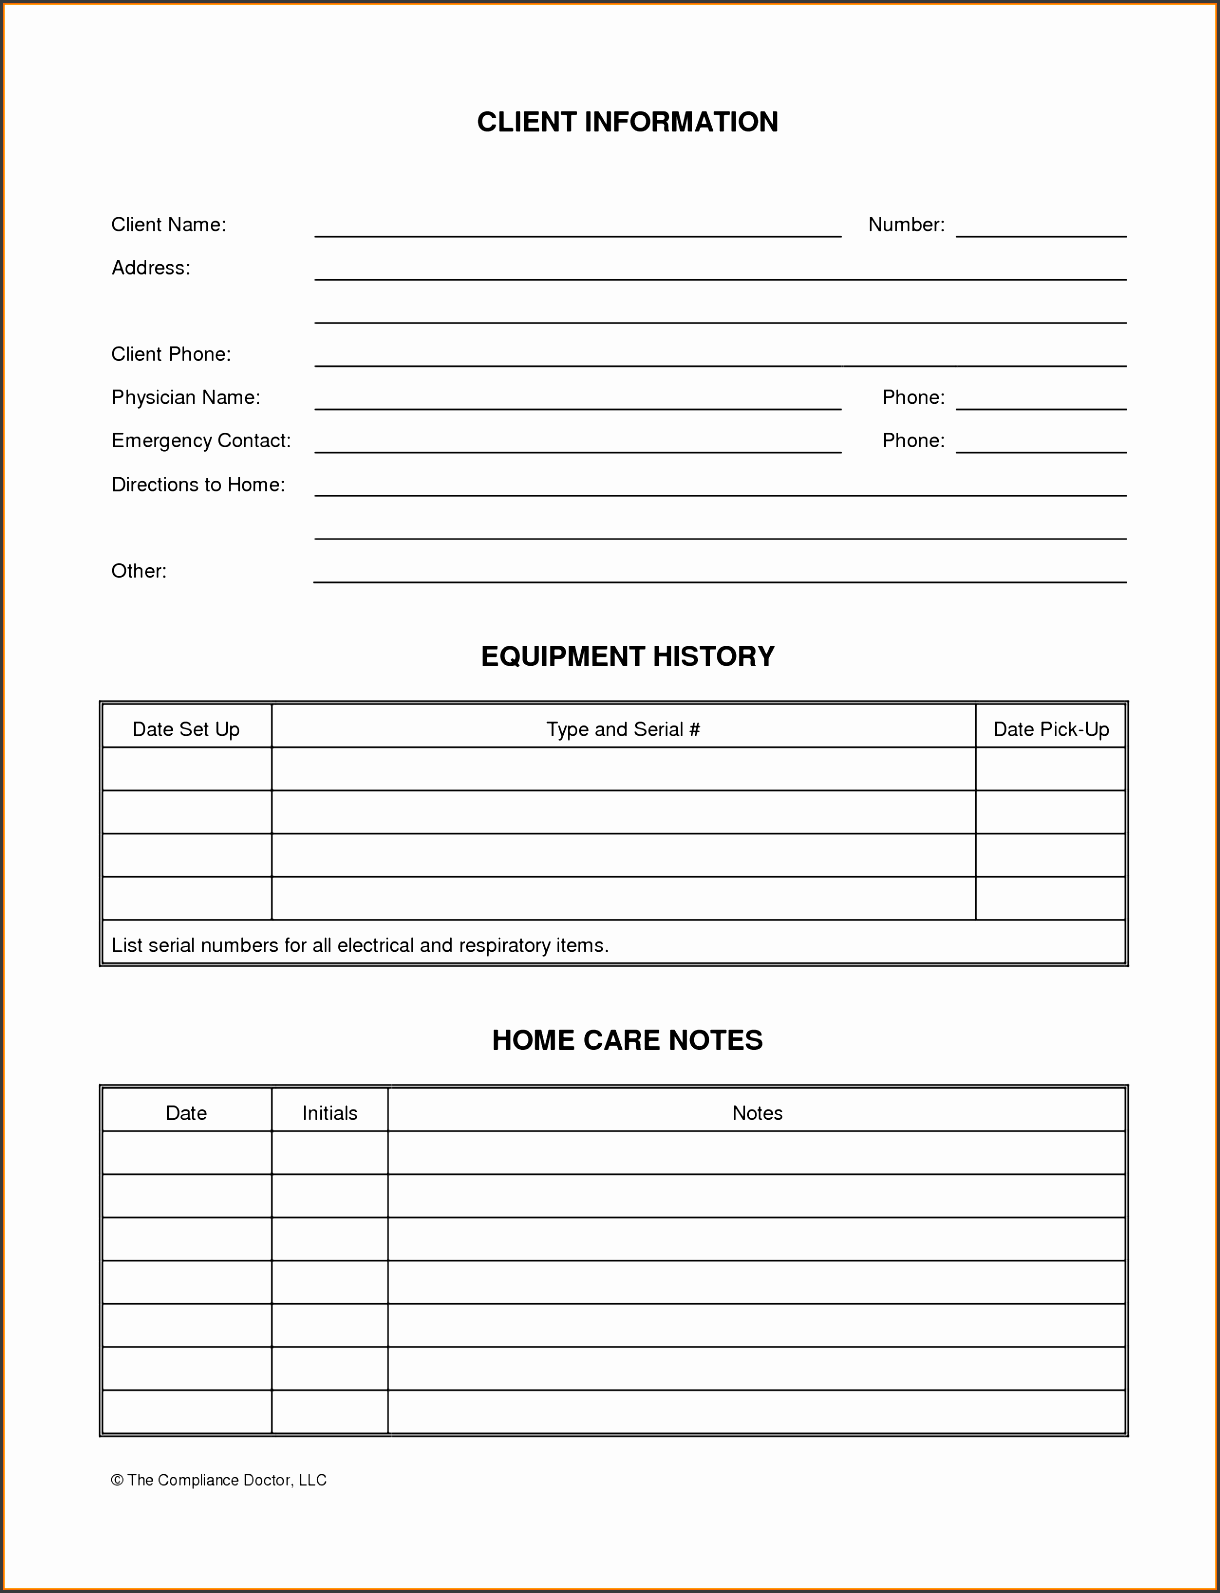 client information form tracking detailed information for each client for consulting reasons